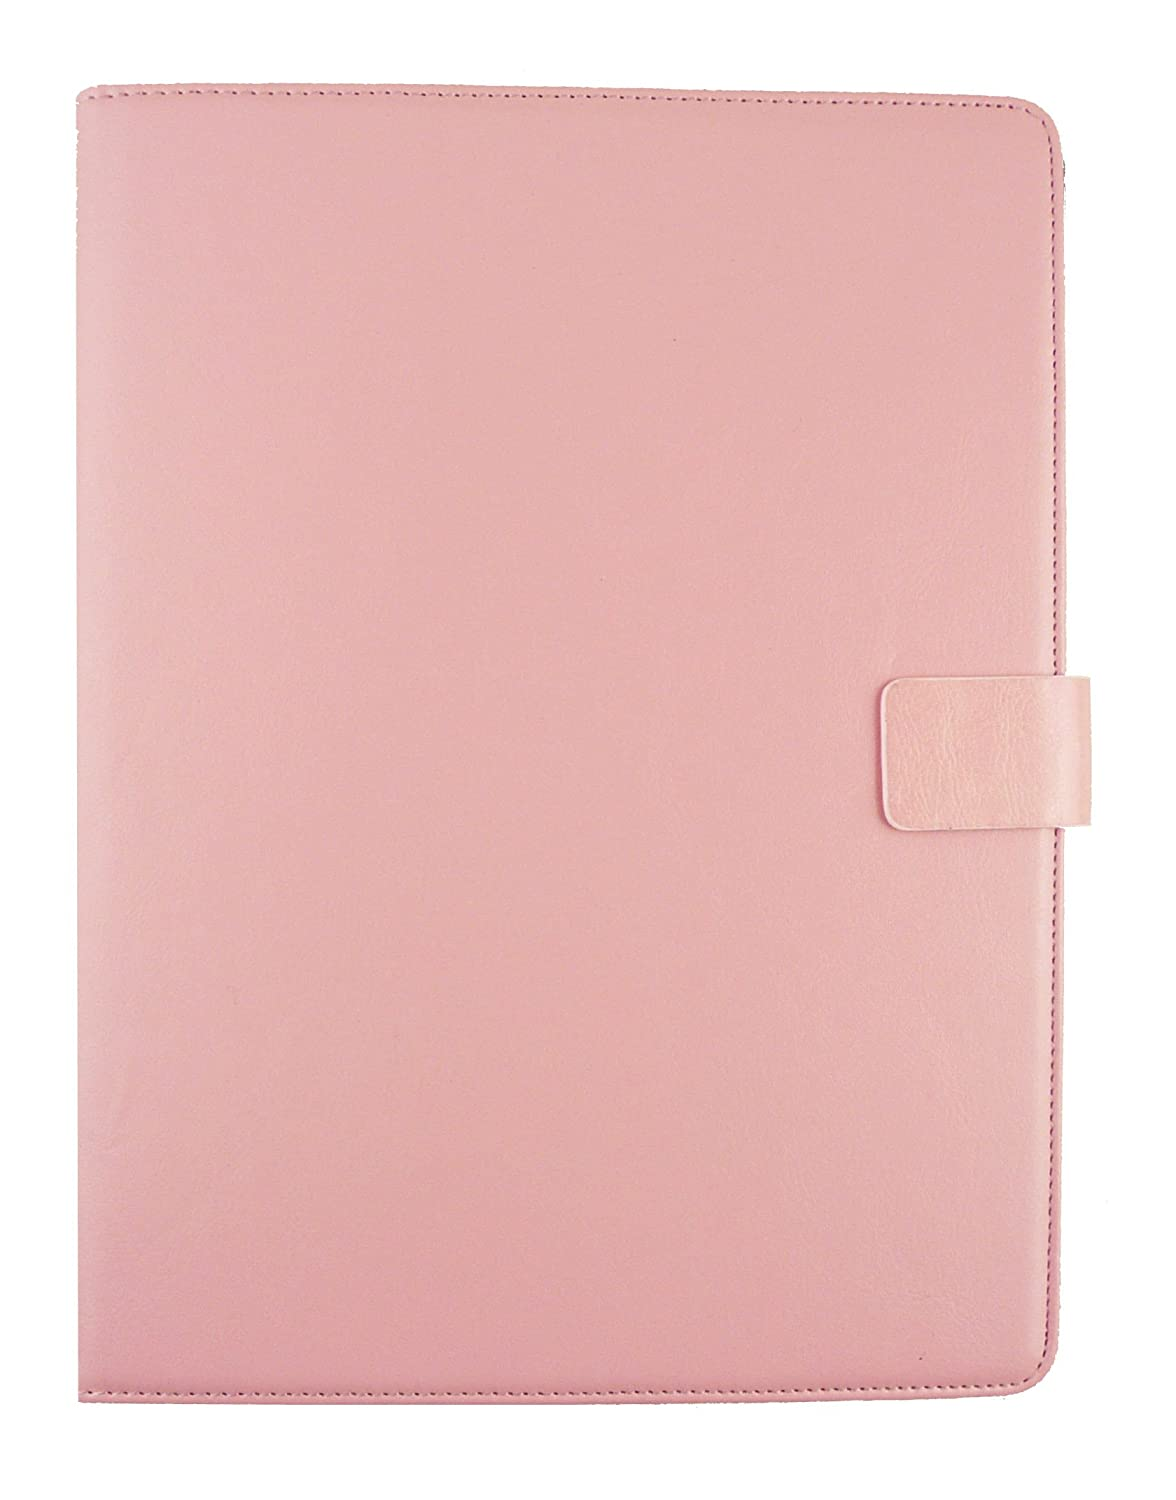 Emartbuy/® LG G Pad 2 8.0 Tablet 8 Inch Universal Range Baby Pink Multi Angle Executive Folio Wallet Case Cover With Card Slots Hot Pink Stylus